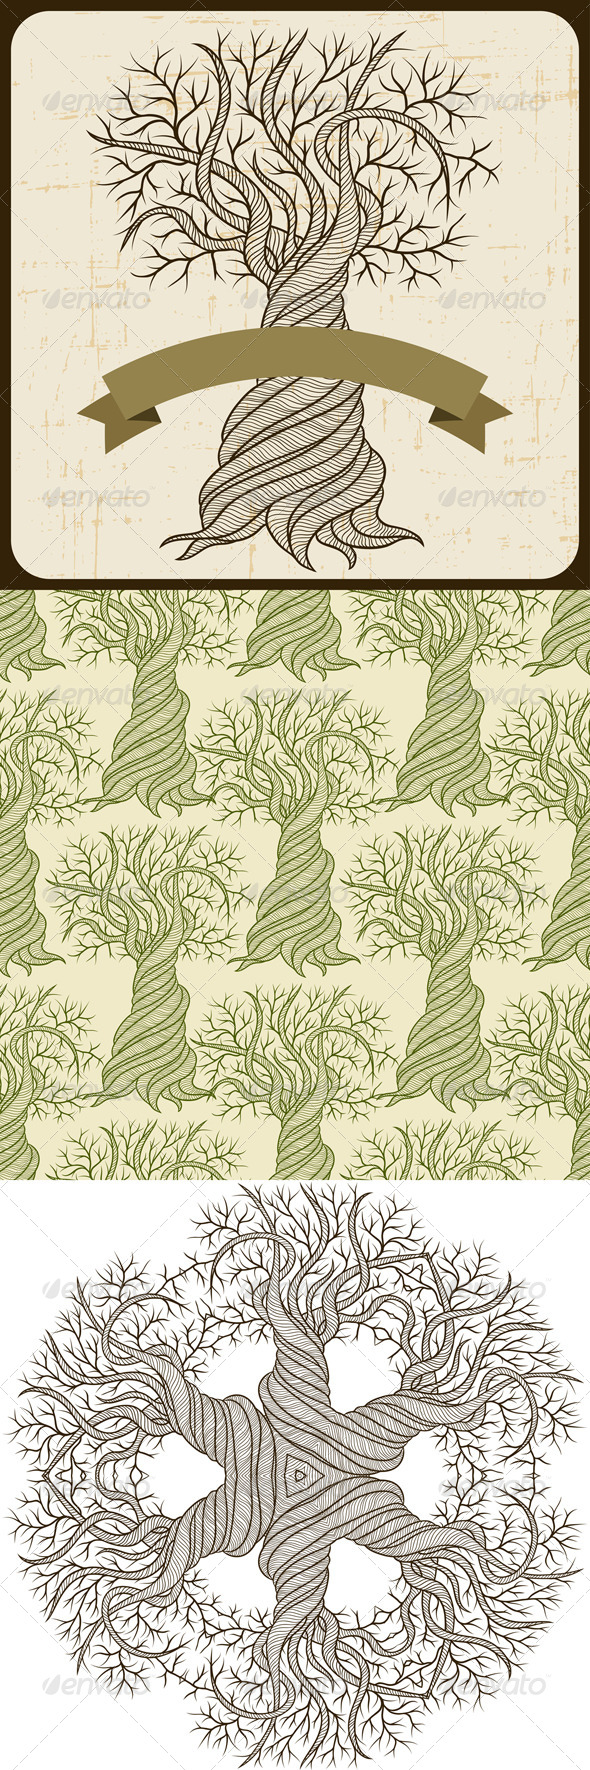 Backgrounds and seamless pattern with trees